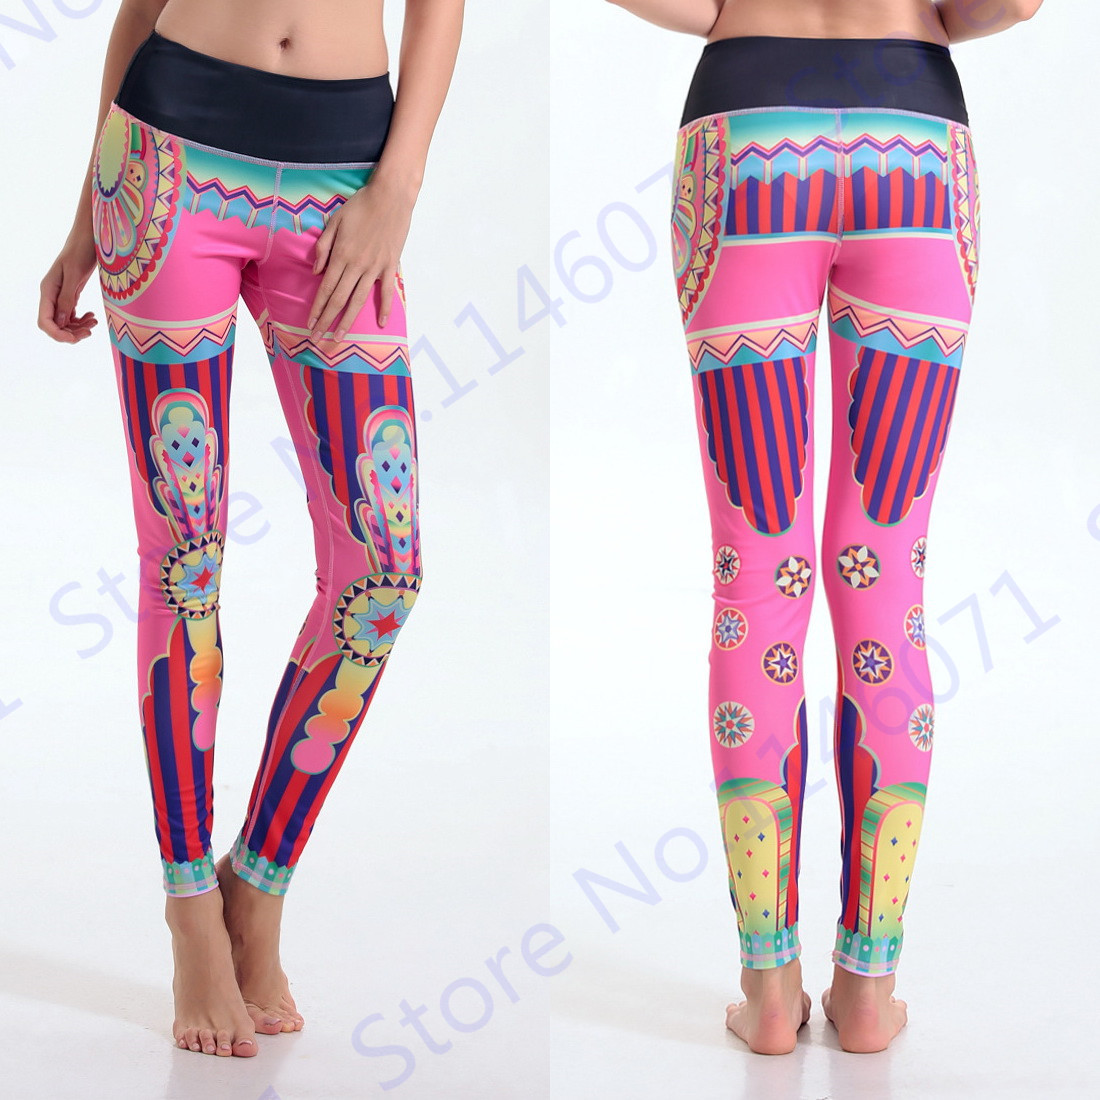 bf8918f6fdc82 Pink Stripes National Yoga Pants Retro Roman Style Female Running Skinny Leggings  Indian Style Sports Exercise Tights 3D Print